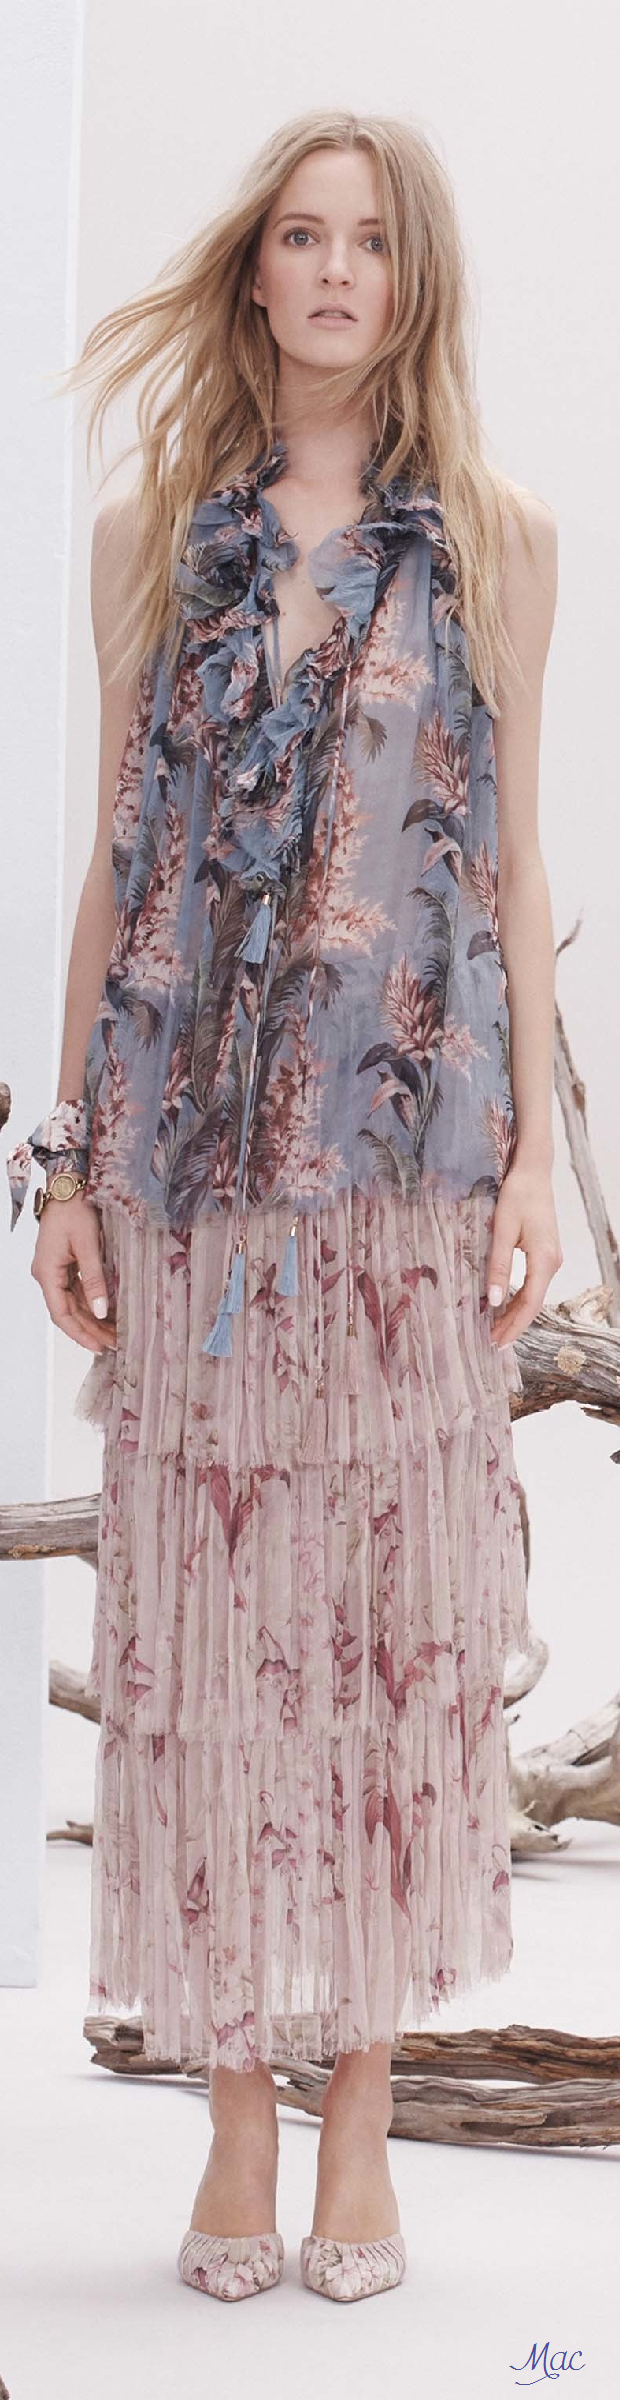 Resort zimmermann a mode pinterest resorts